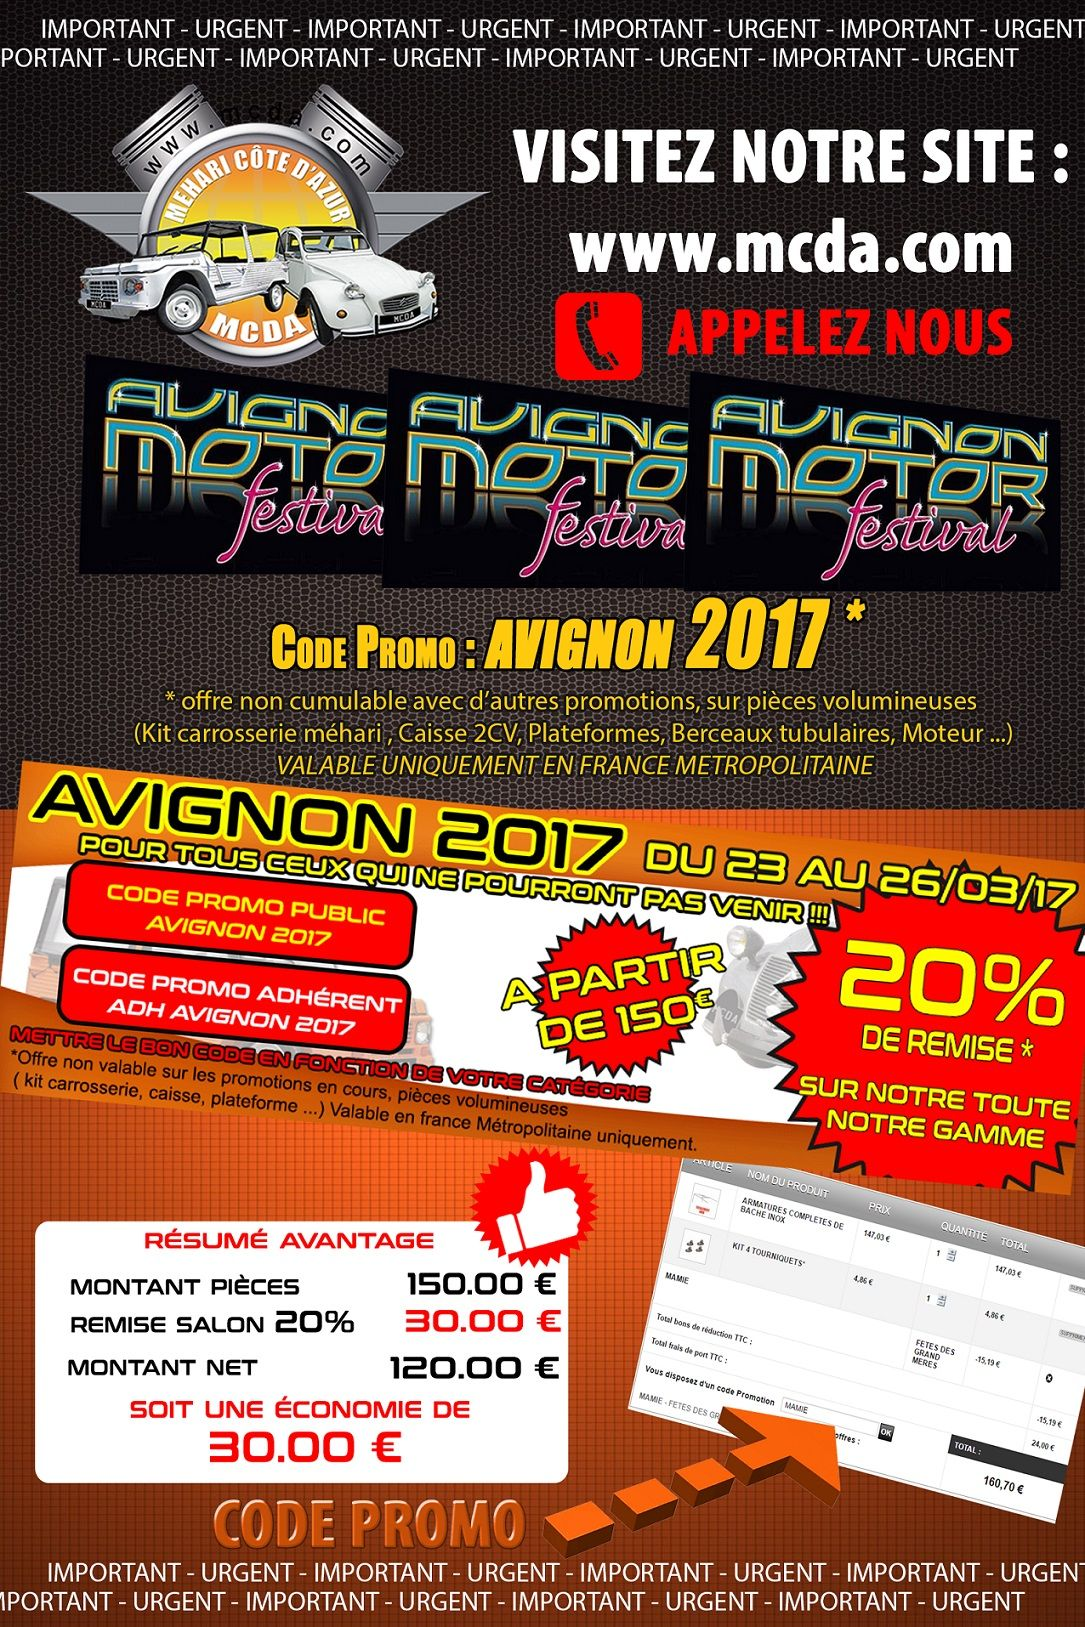 20 de r duction avec le code promo avignon 2017 sur toutes les pi ces 2cv mehari dyane. Black Bedroom Furniture Sets. Home Design Ideas